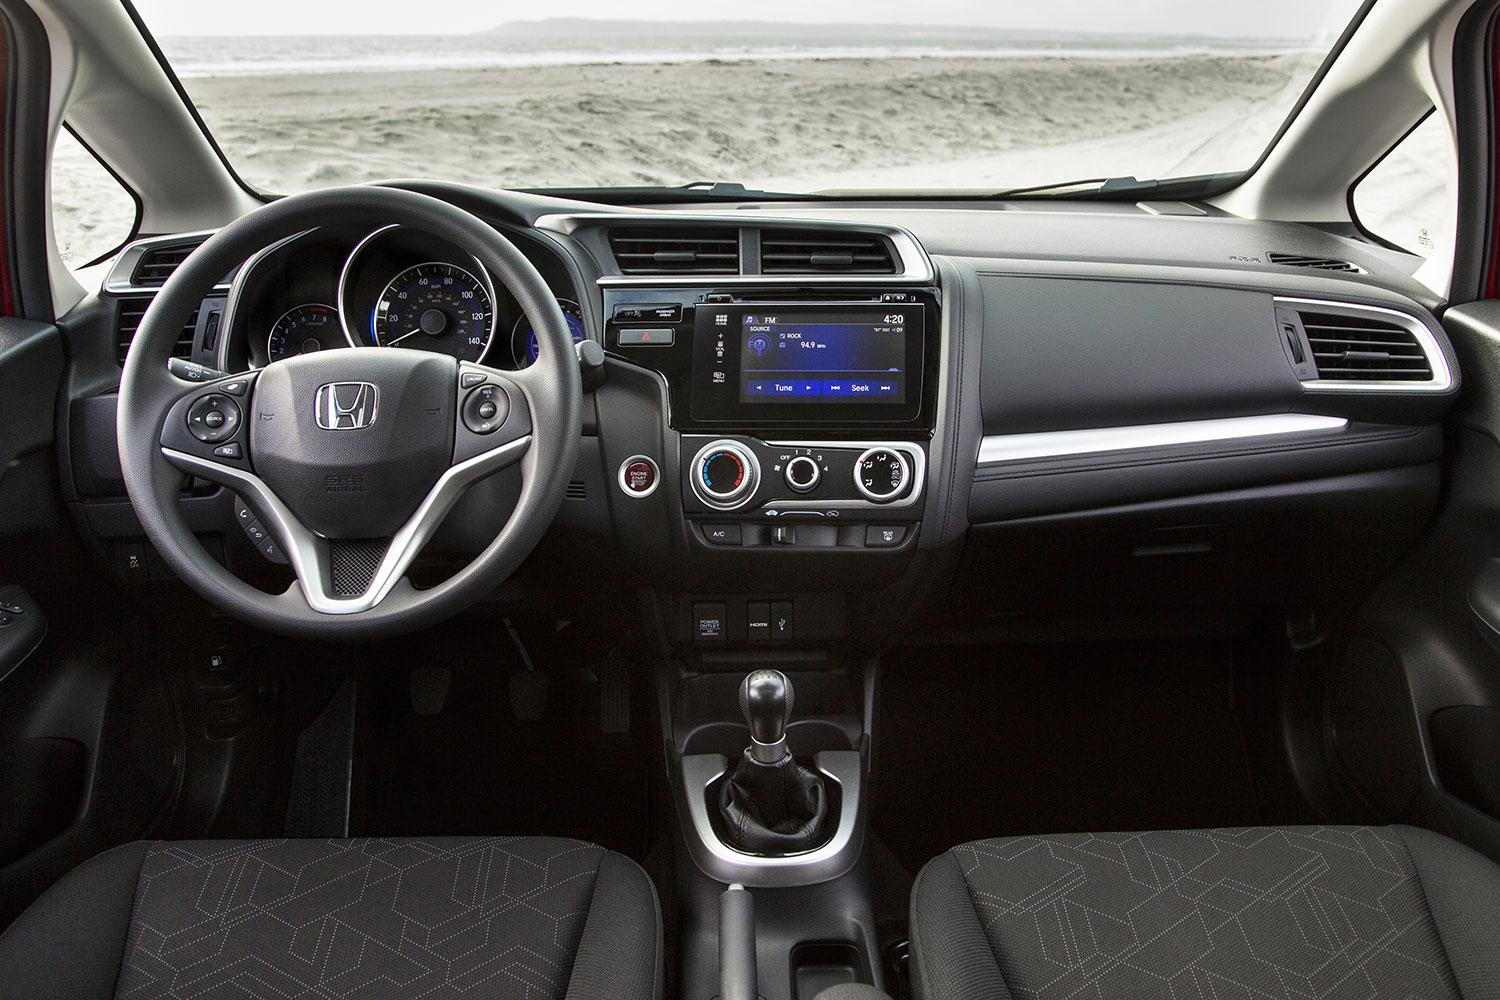 2015 Honda HR-V Interior